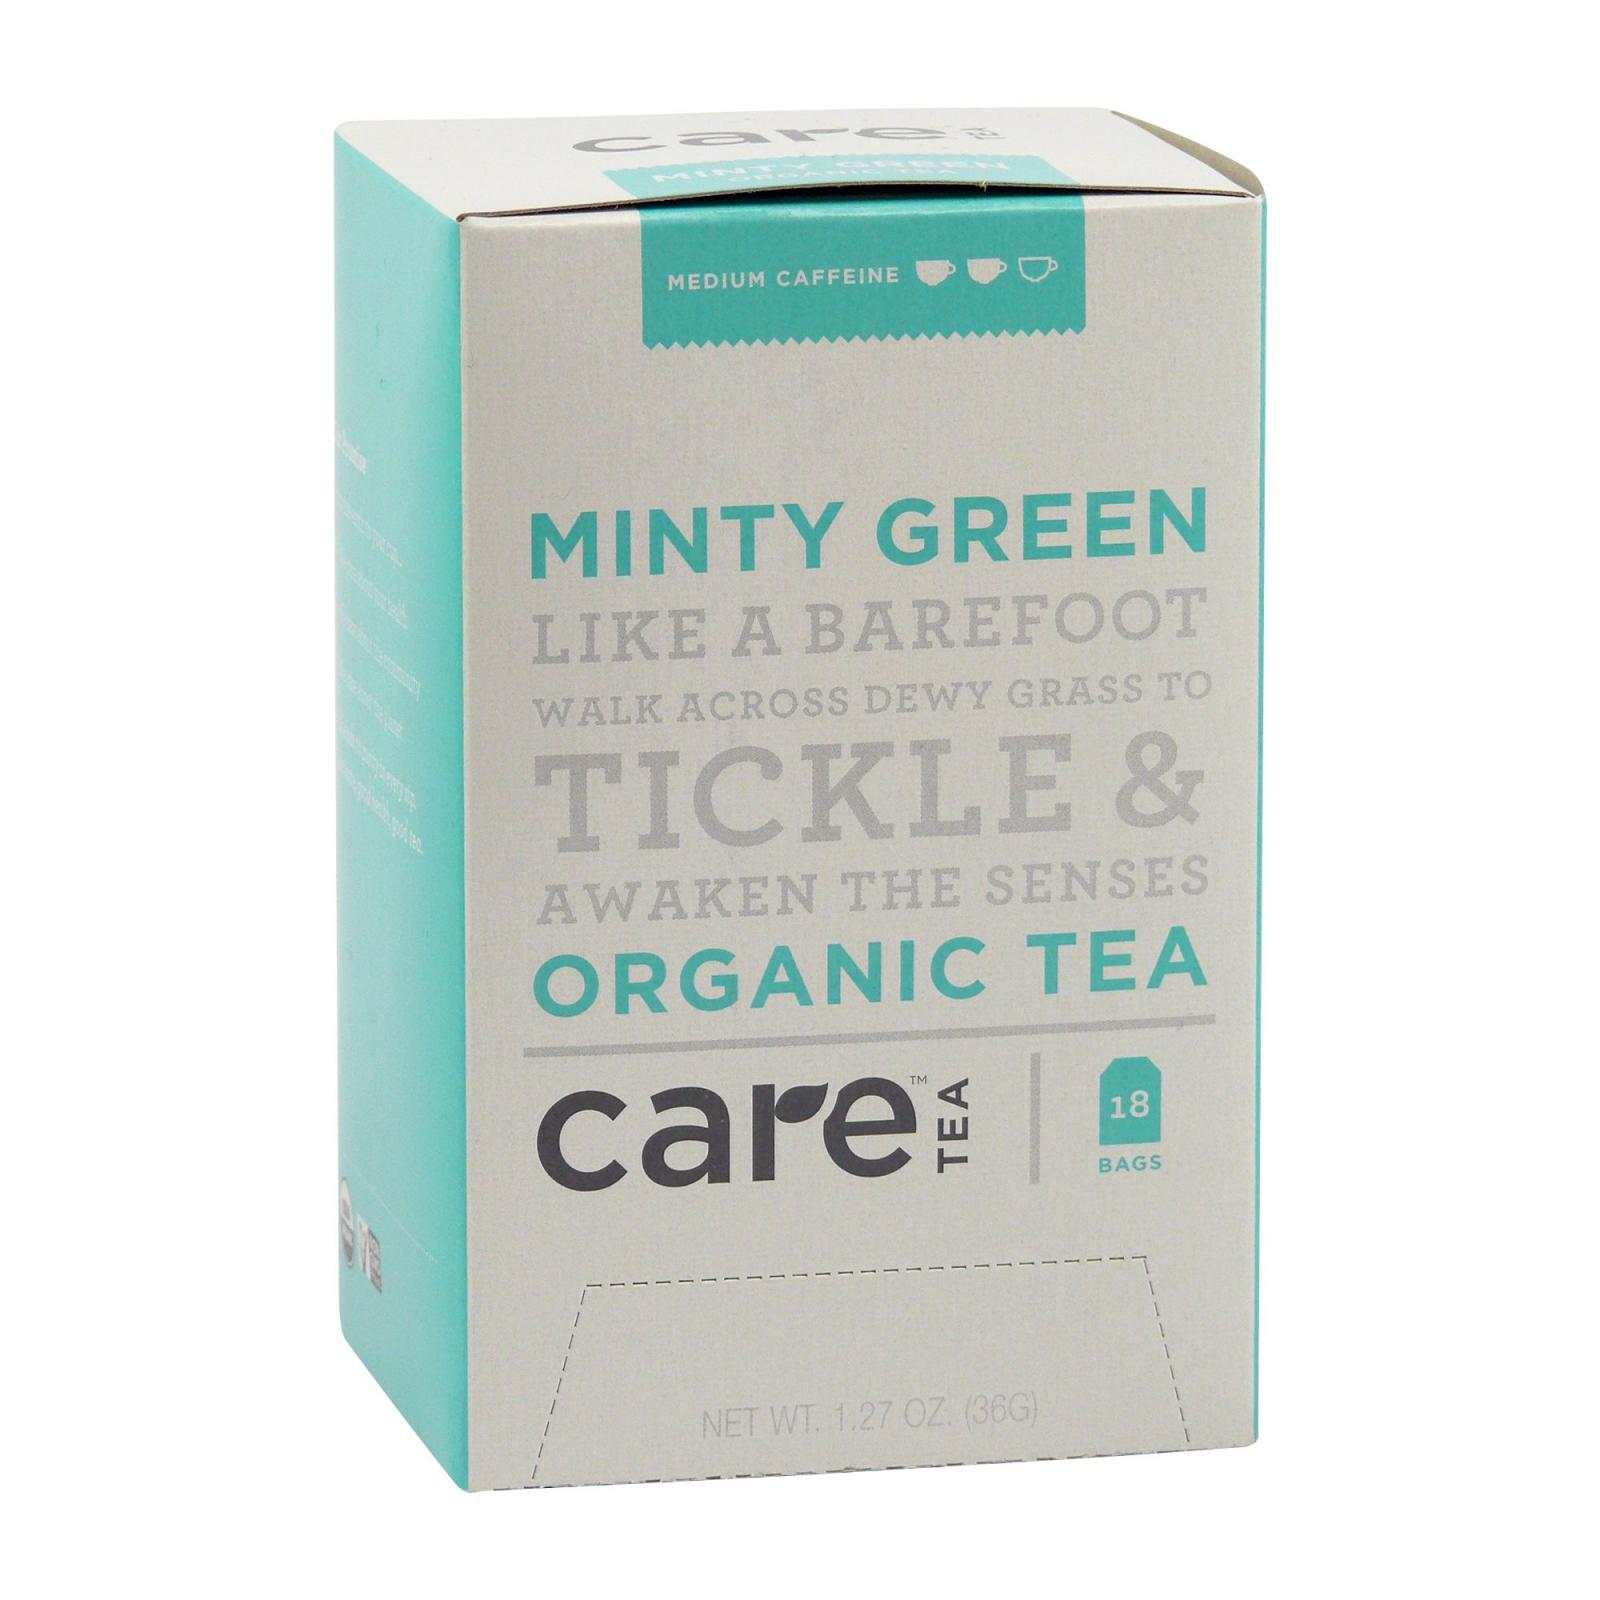 Care Tea Zelený čaj Minty Green 18 ks, 36 g